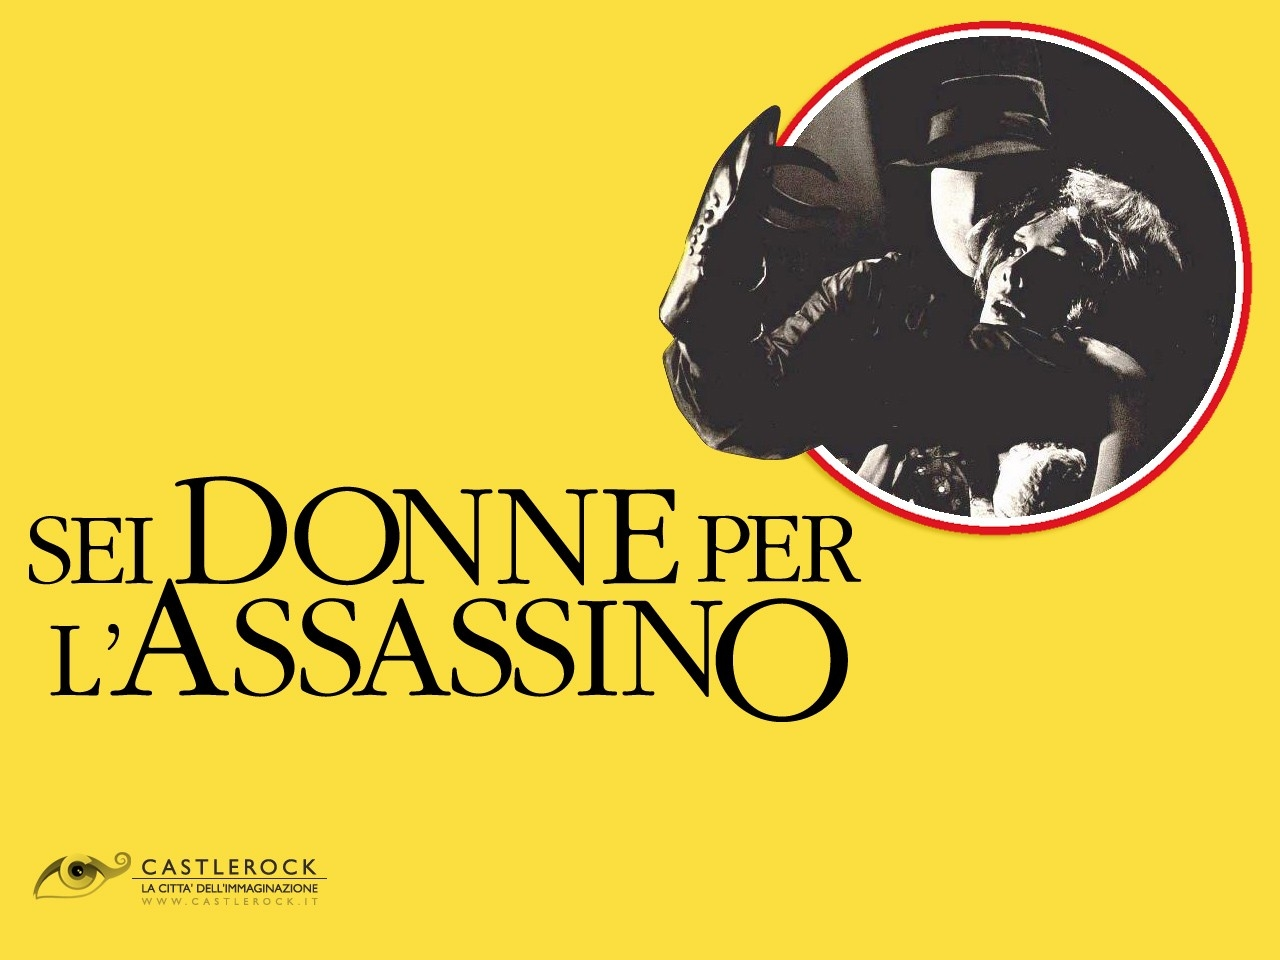 Wallpaper del film Sei donne per l'assassino